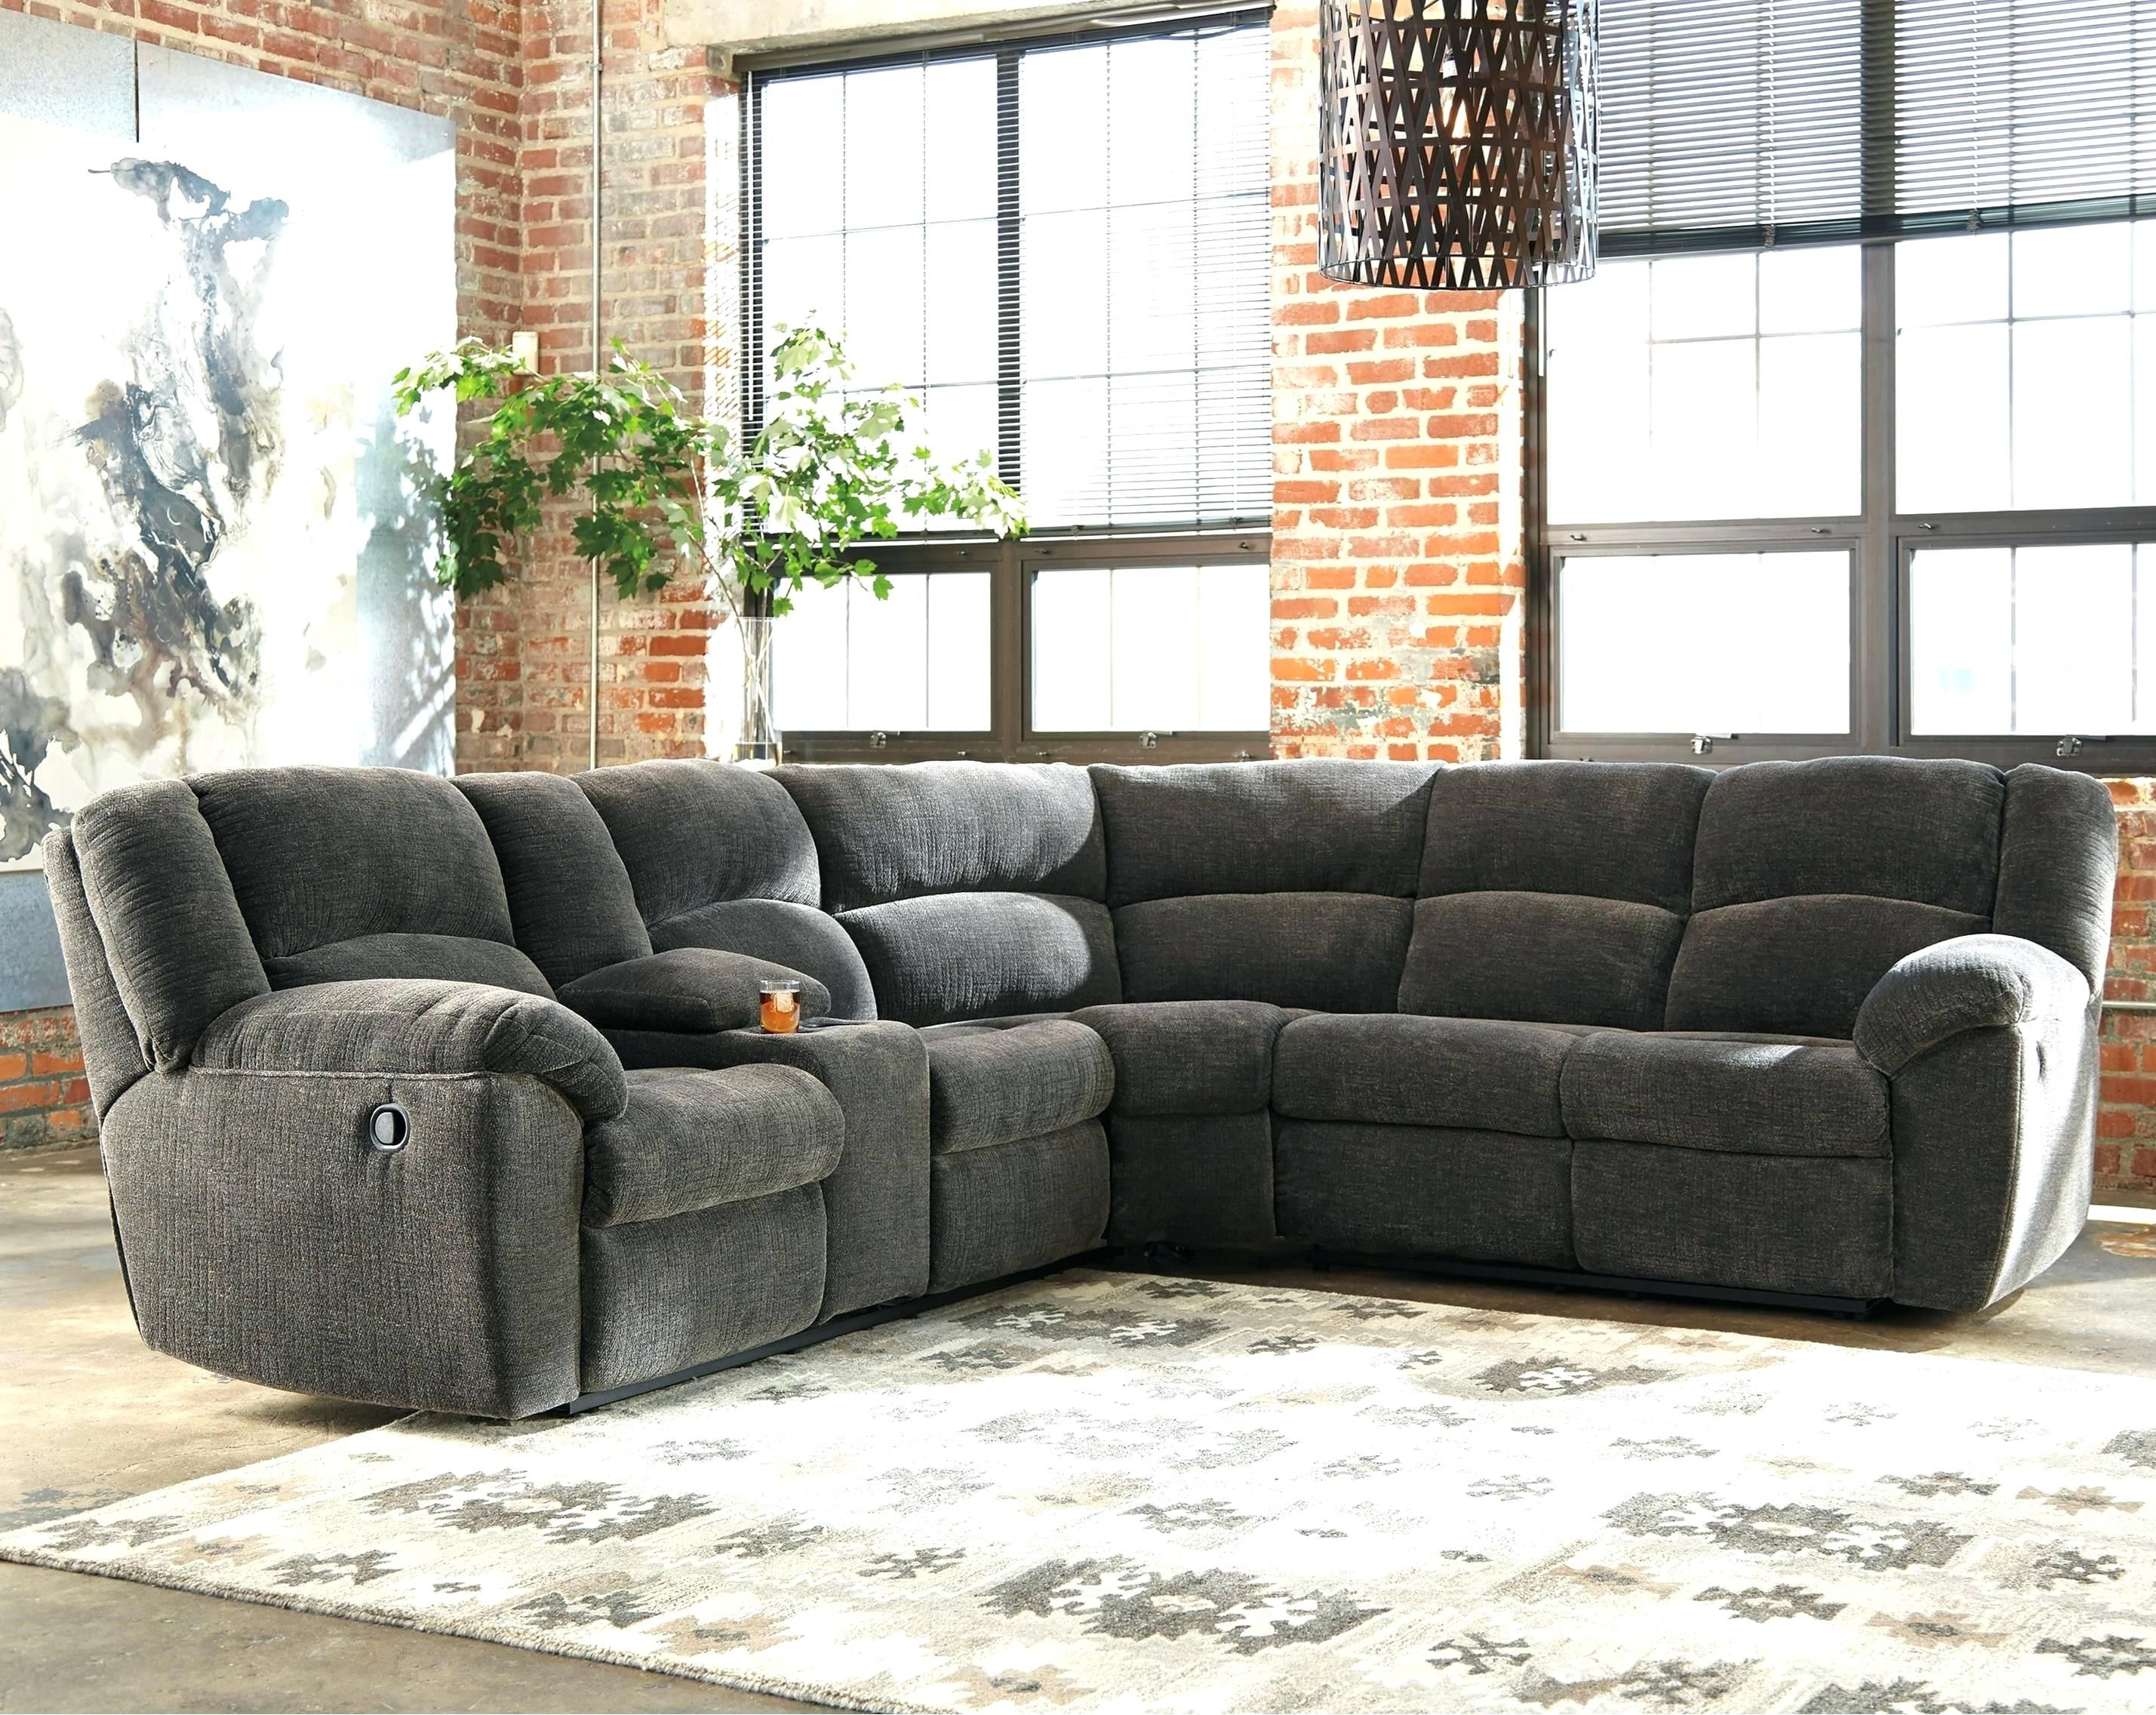 572 Reclining Sectional Sofa With Chaise By Franklin Pillow Covers Cases Sofas Recliners Under 1000 Baci Living Room